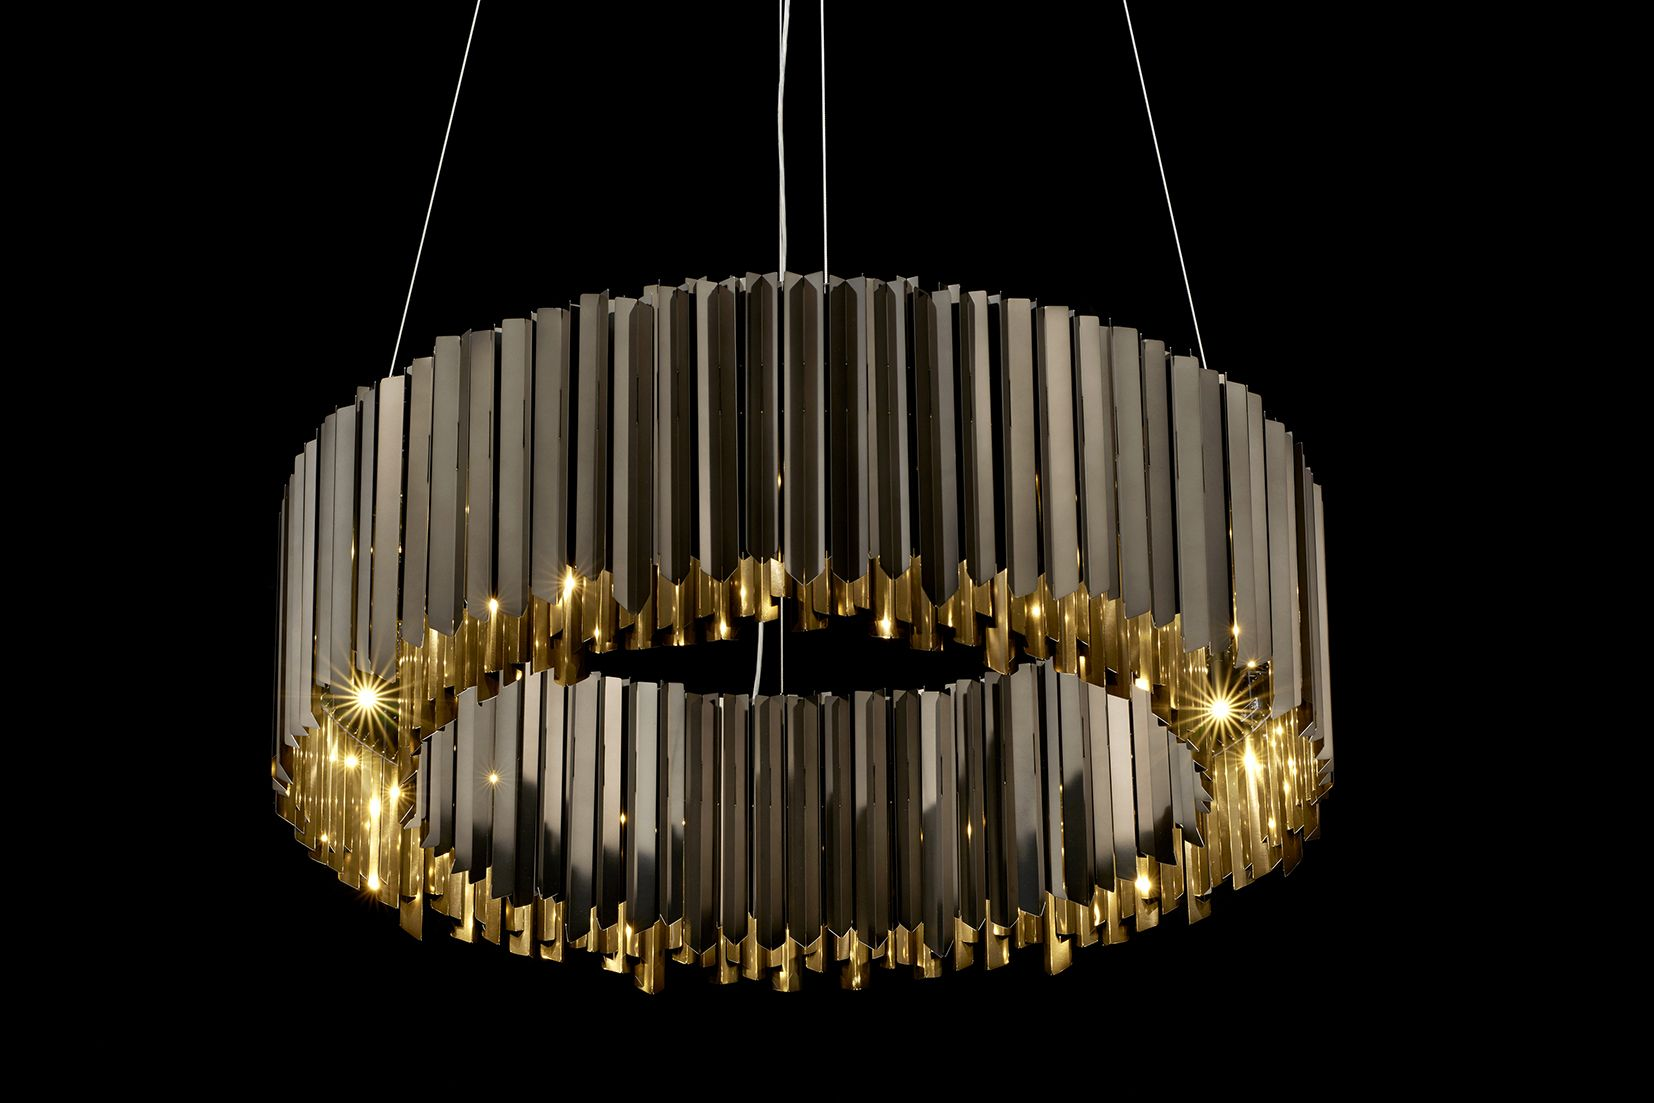 Tom kirk facet chandelier contemporary lighting products great tom kirk facet chandelier contemporary lighting products arubaitofo Choice Image